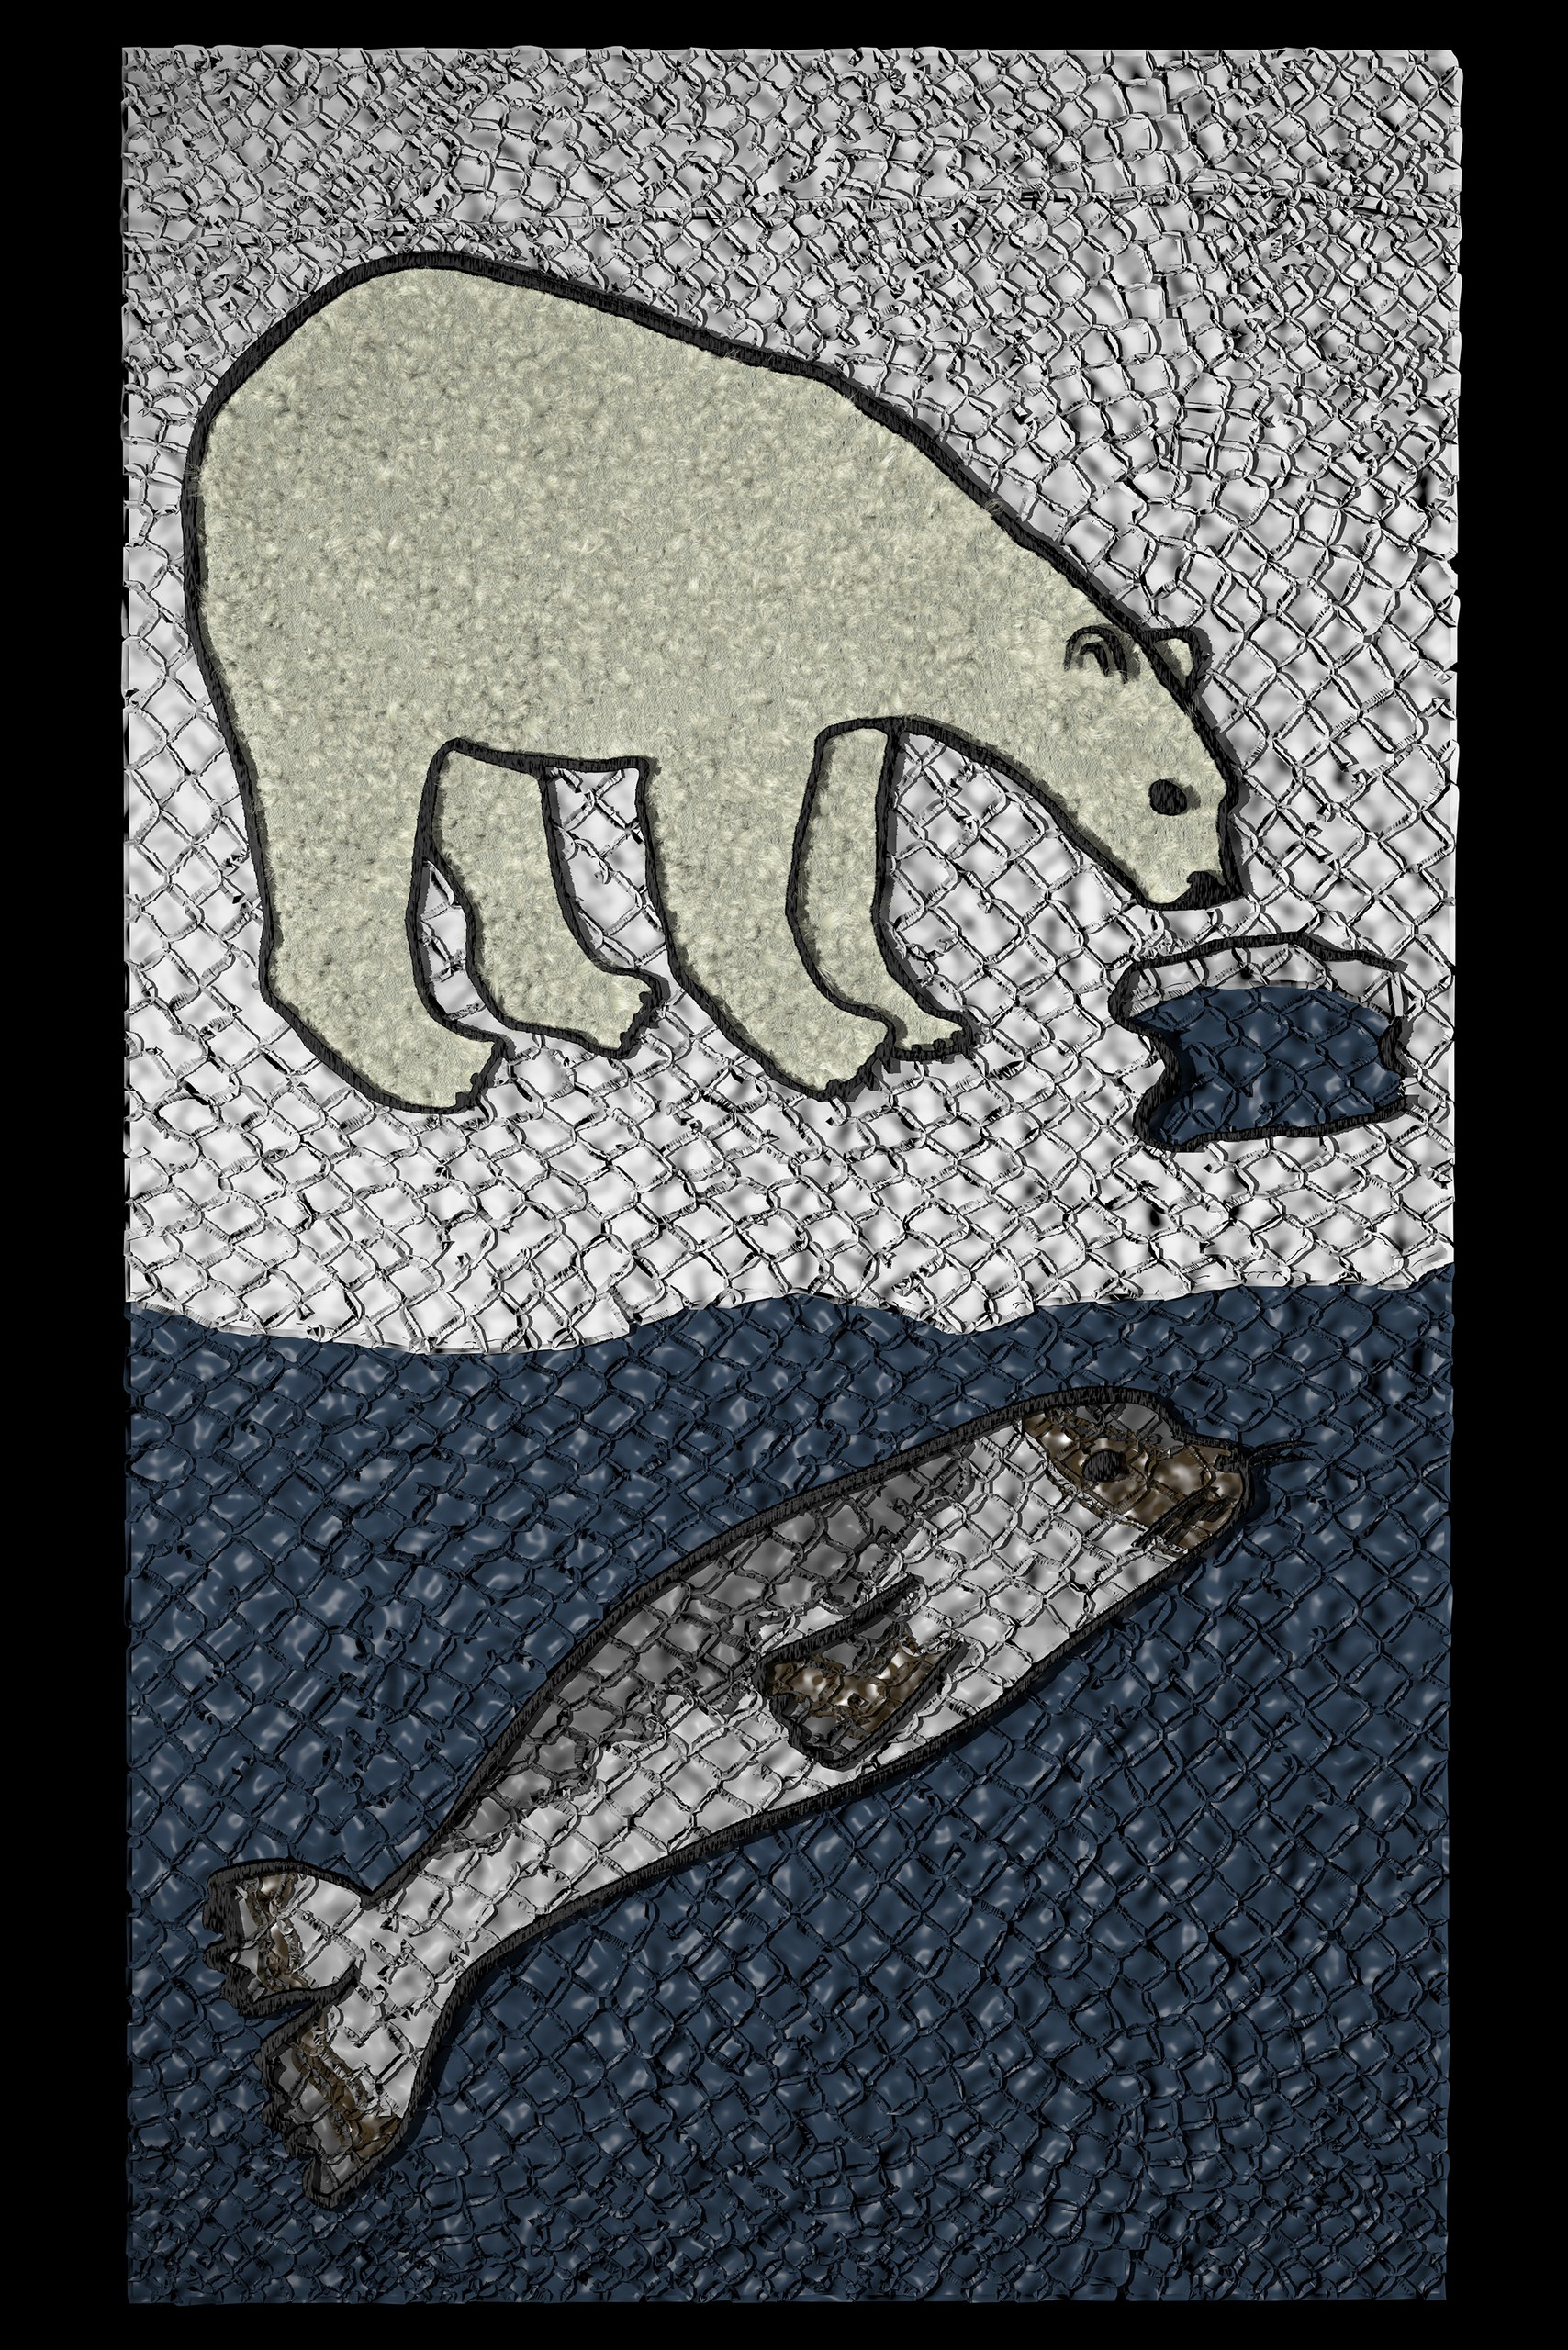 Embroidered patch on fish skin marquetry